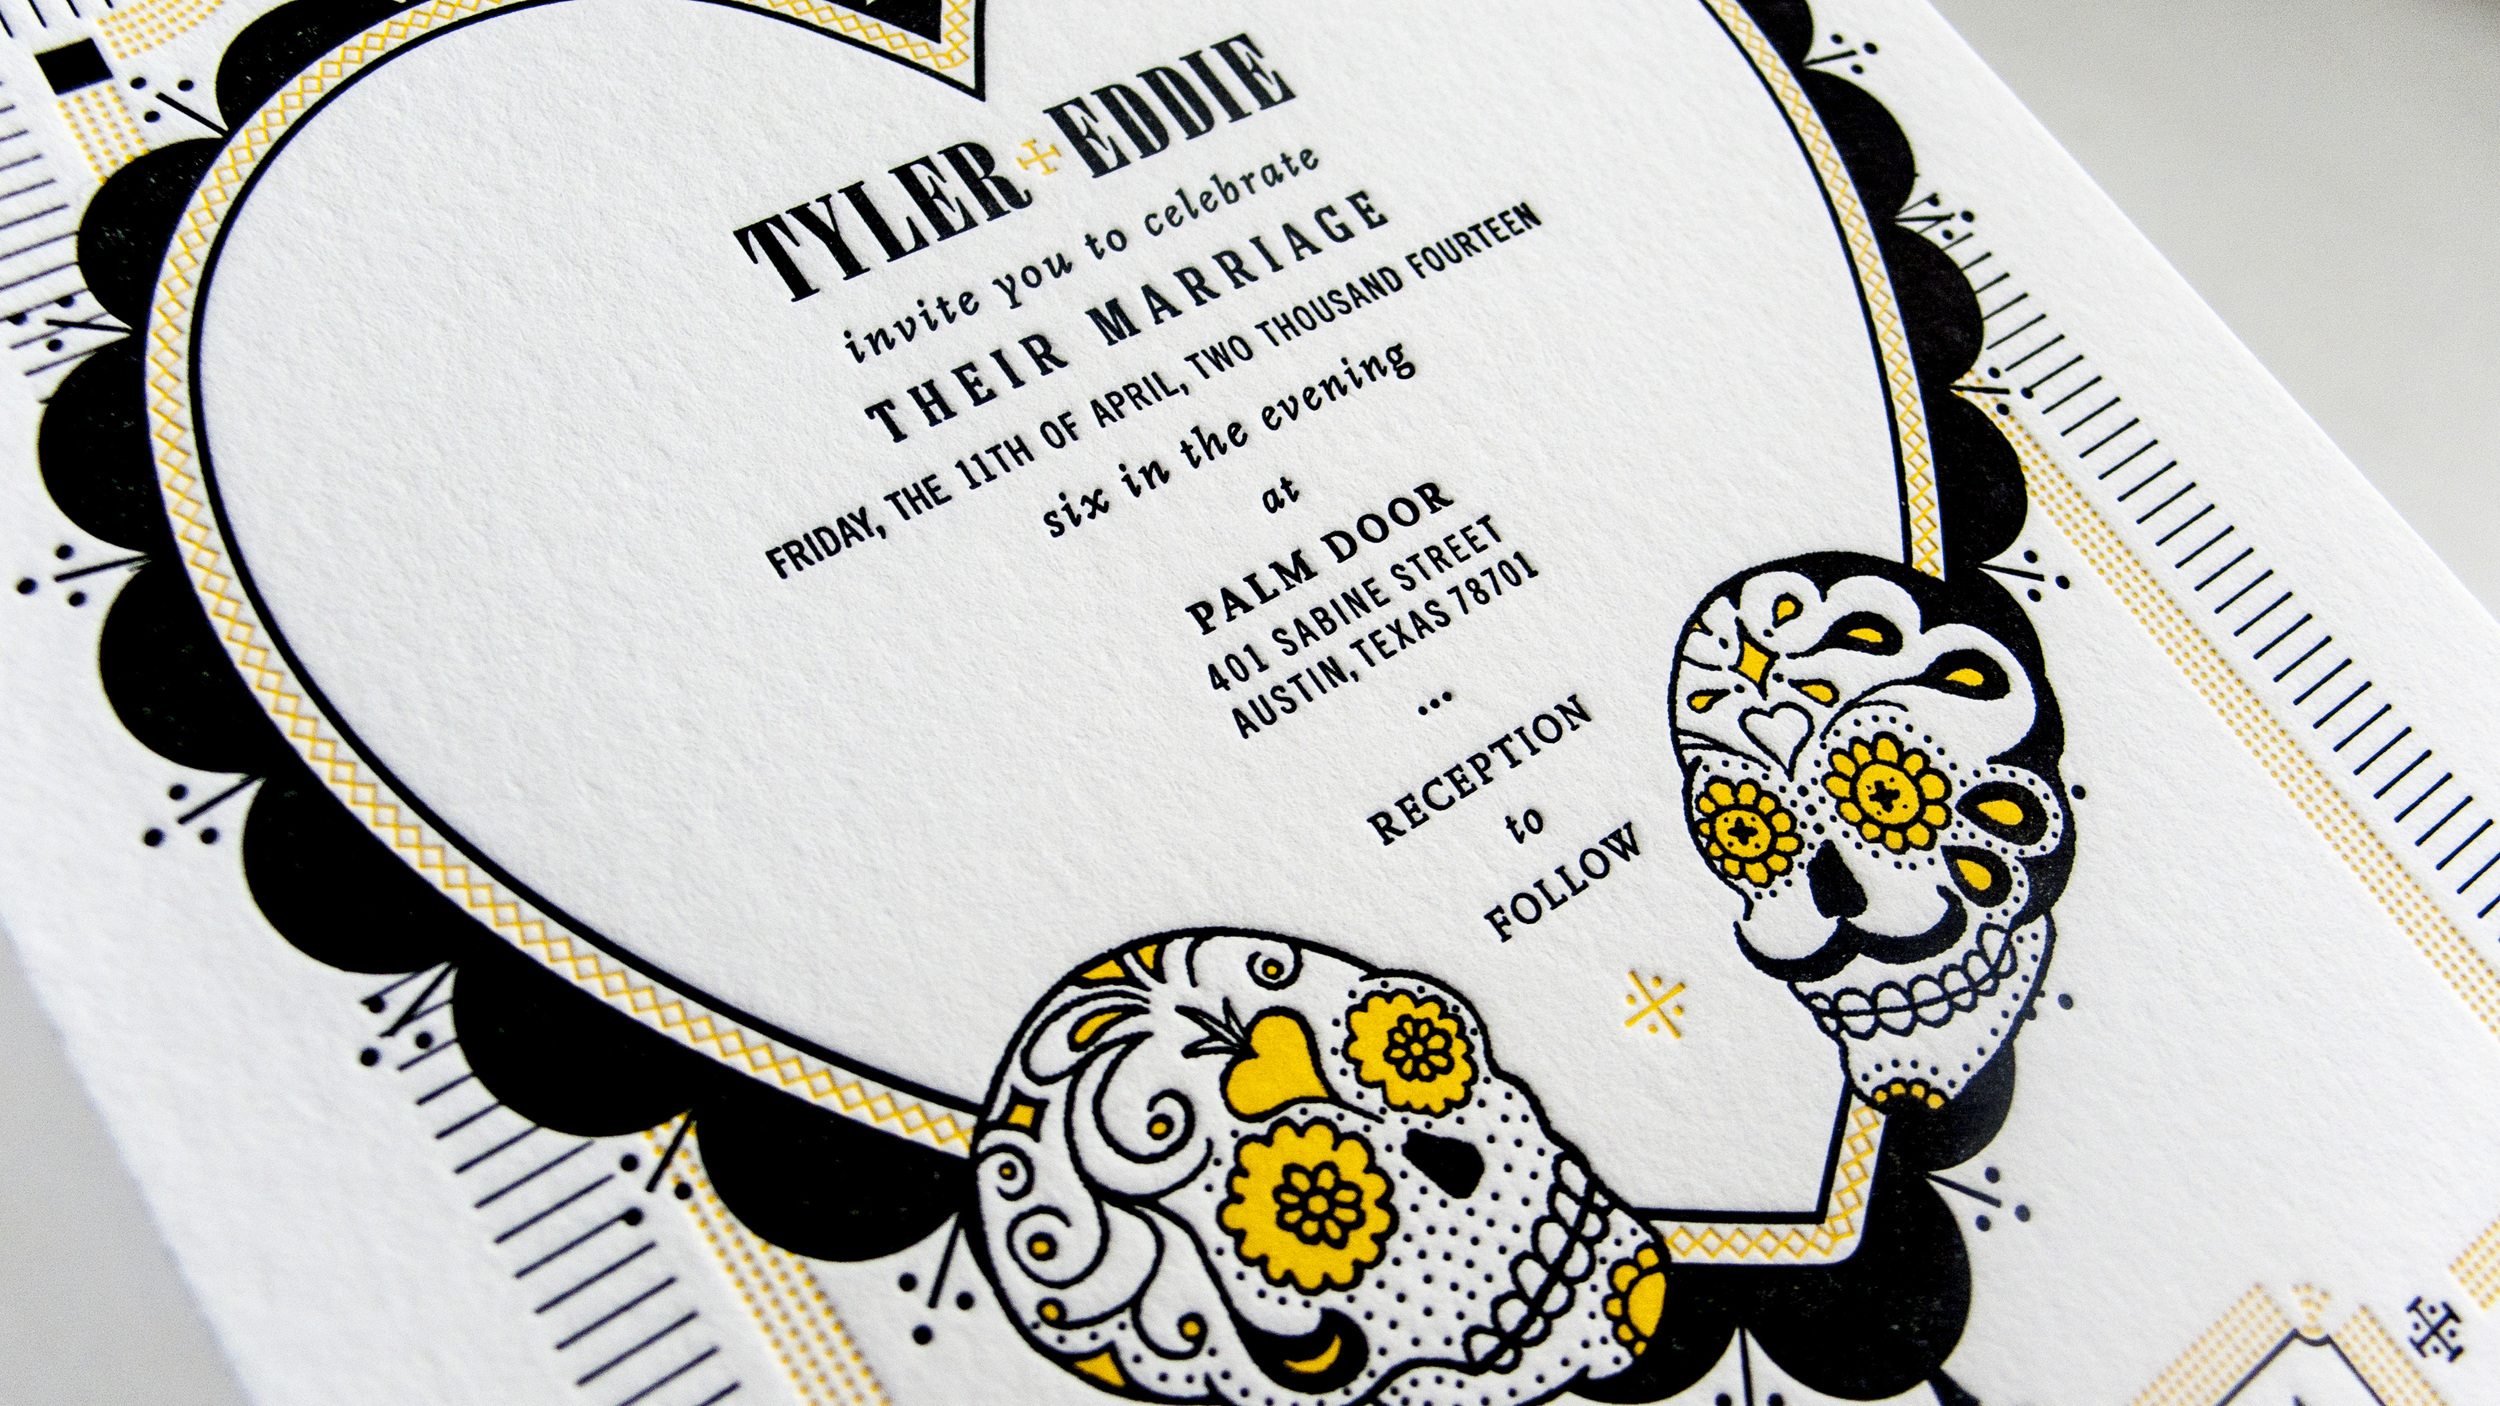 TYLER & EDDIE'S WEDDING INVITATION - honorable mentioned invitation design